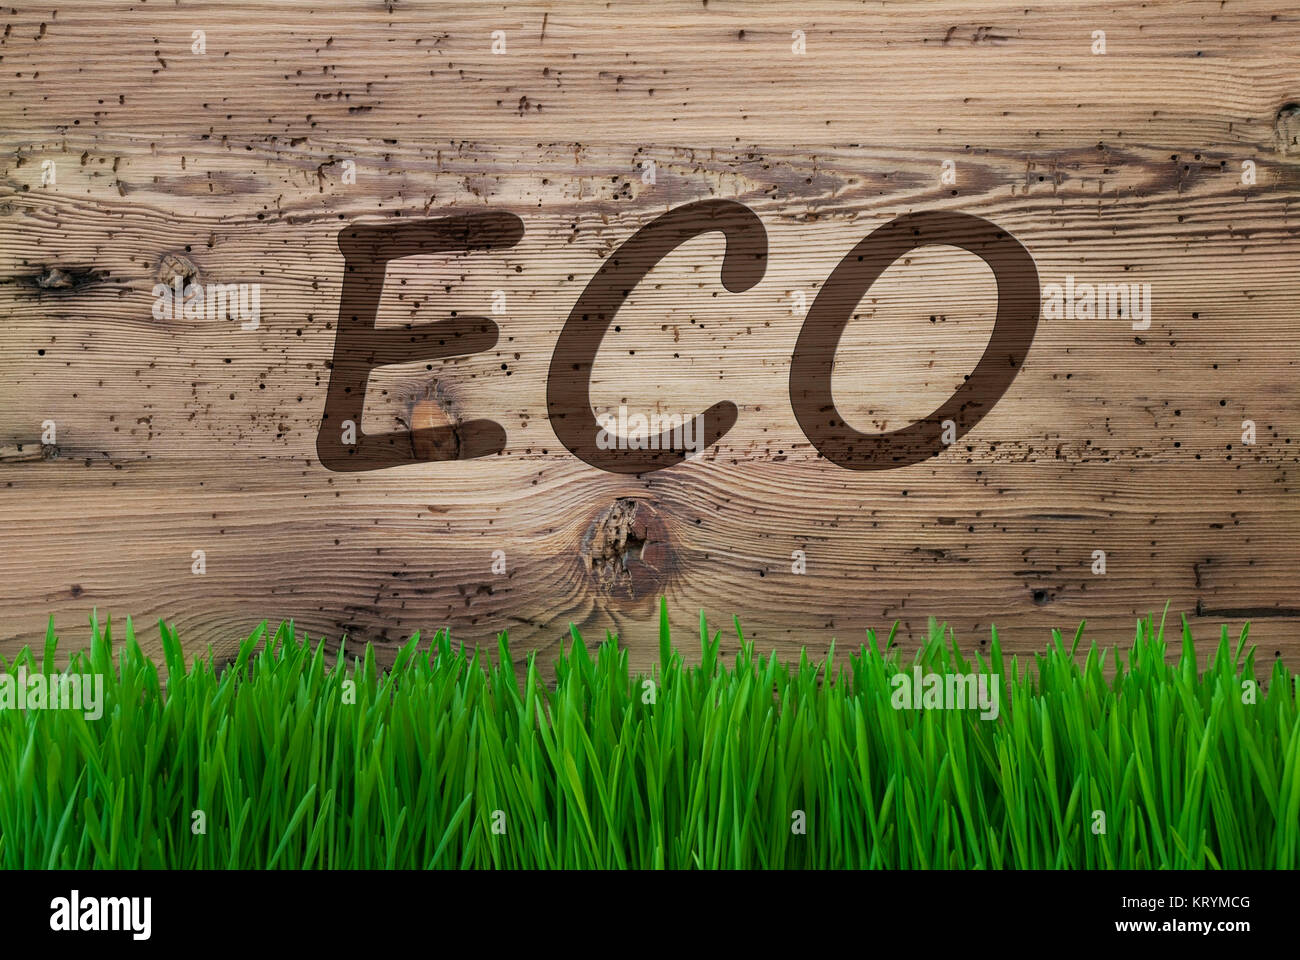 English Text Eco. Spring Season Greeting Card. Aged Wooden Background With Gras. Stock Photo